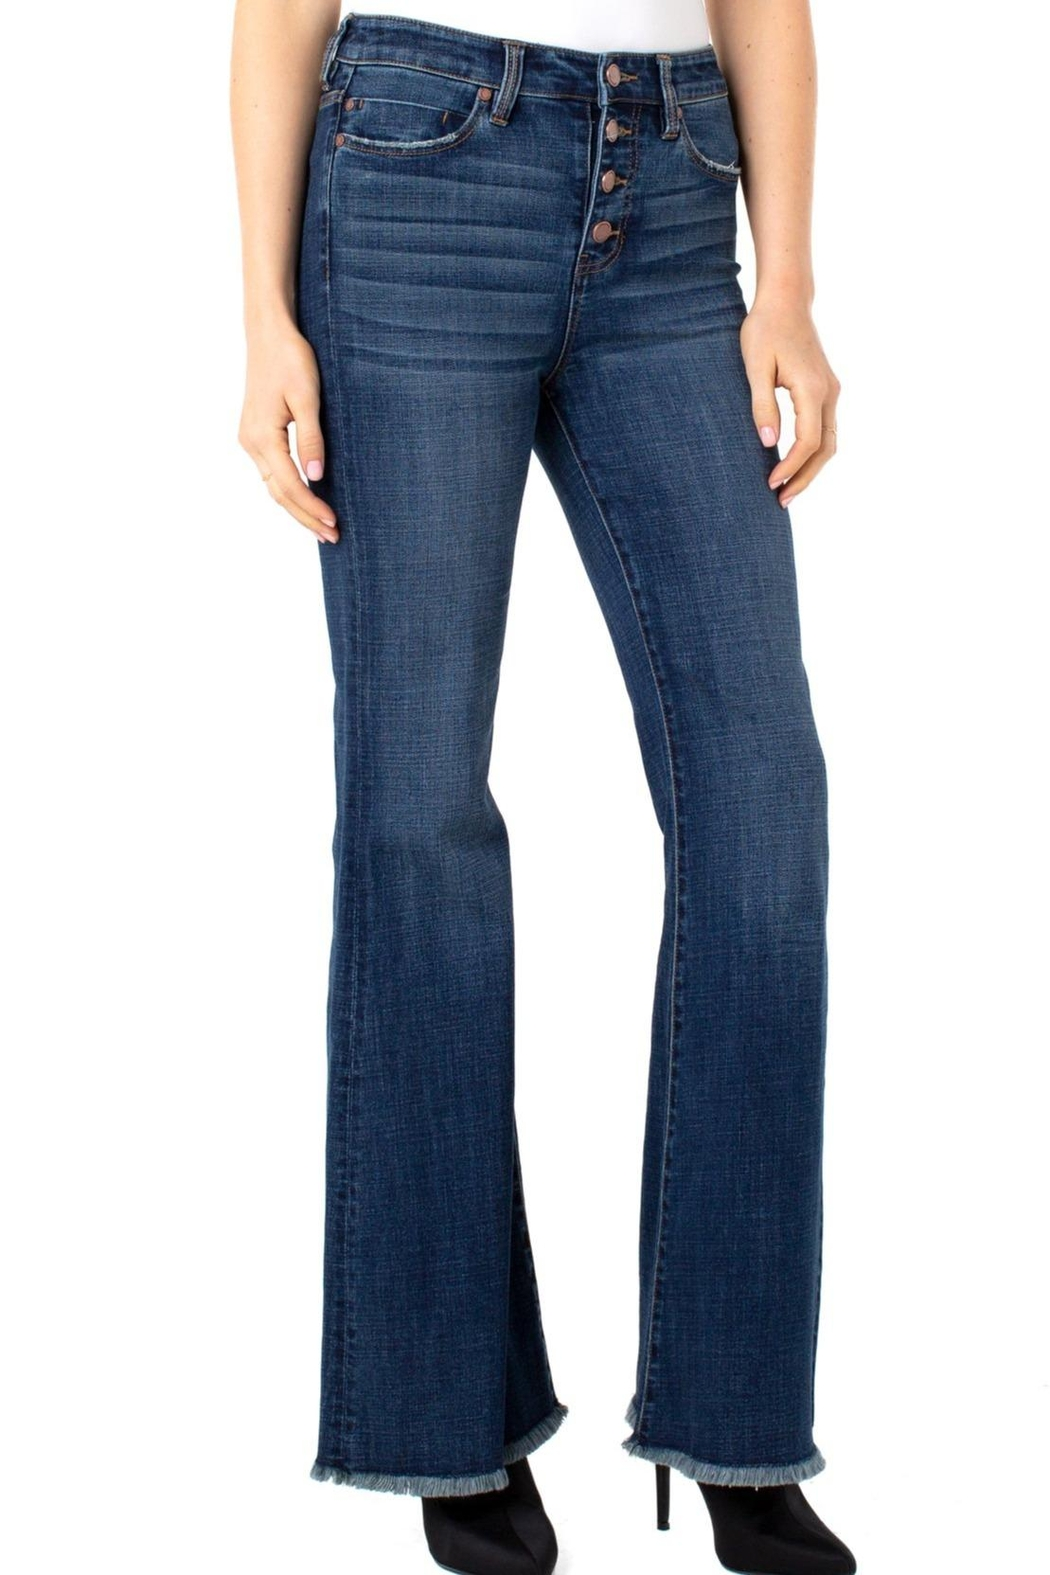 Liverpool Jeans Company Hi-Rise Flare Exposed Buttons Fray Hem Jeans - Side Cropped Image